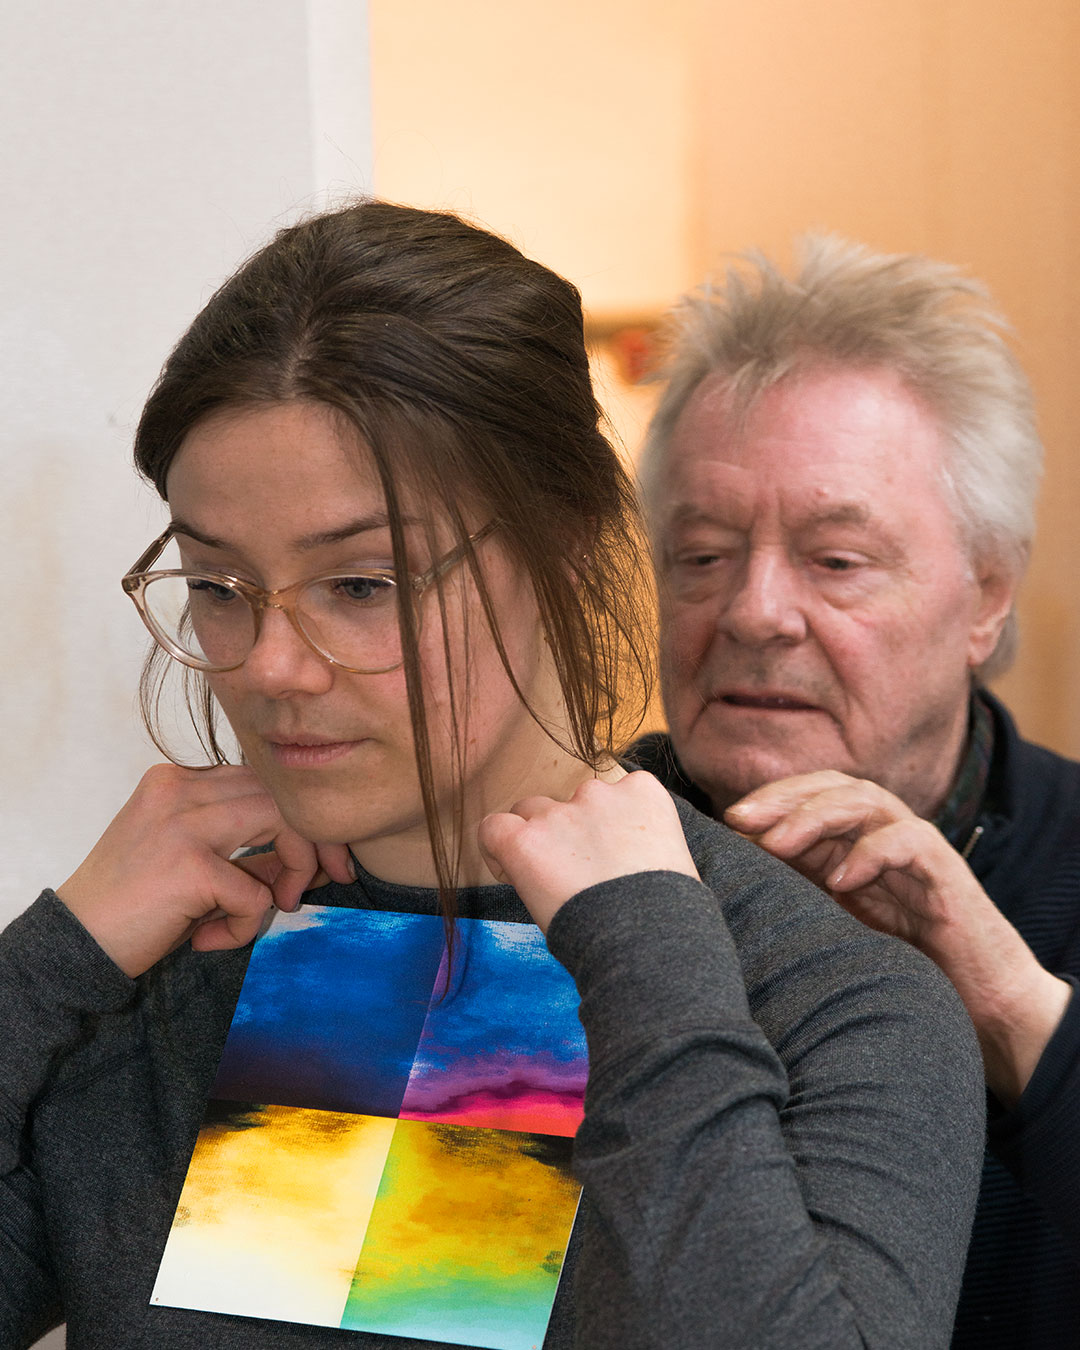 Astrid Ubbink and Robert Smit fitting a necklace